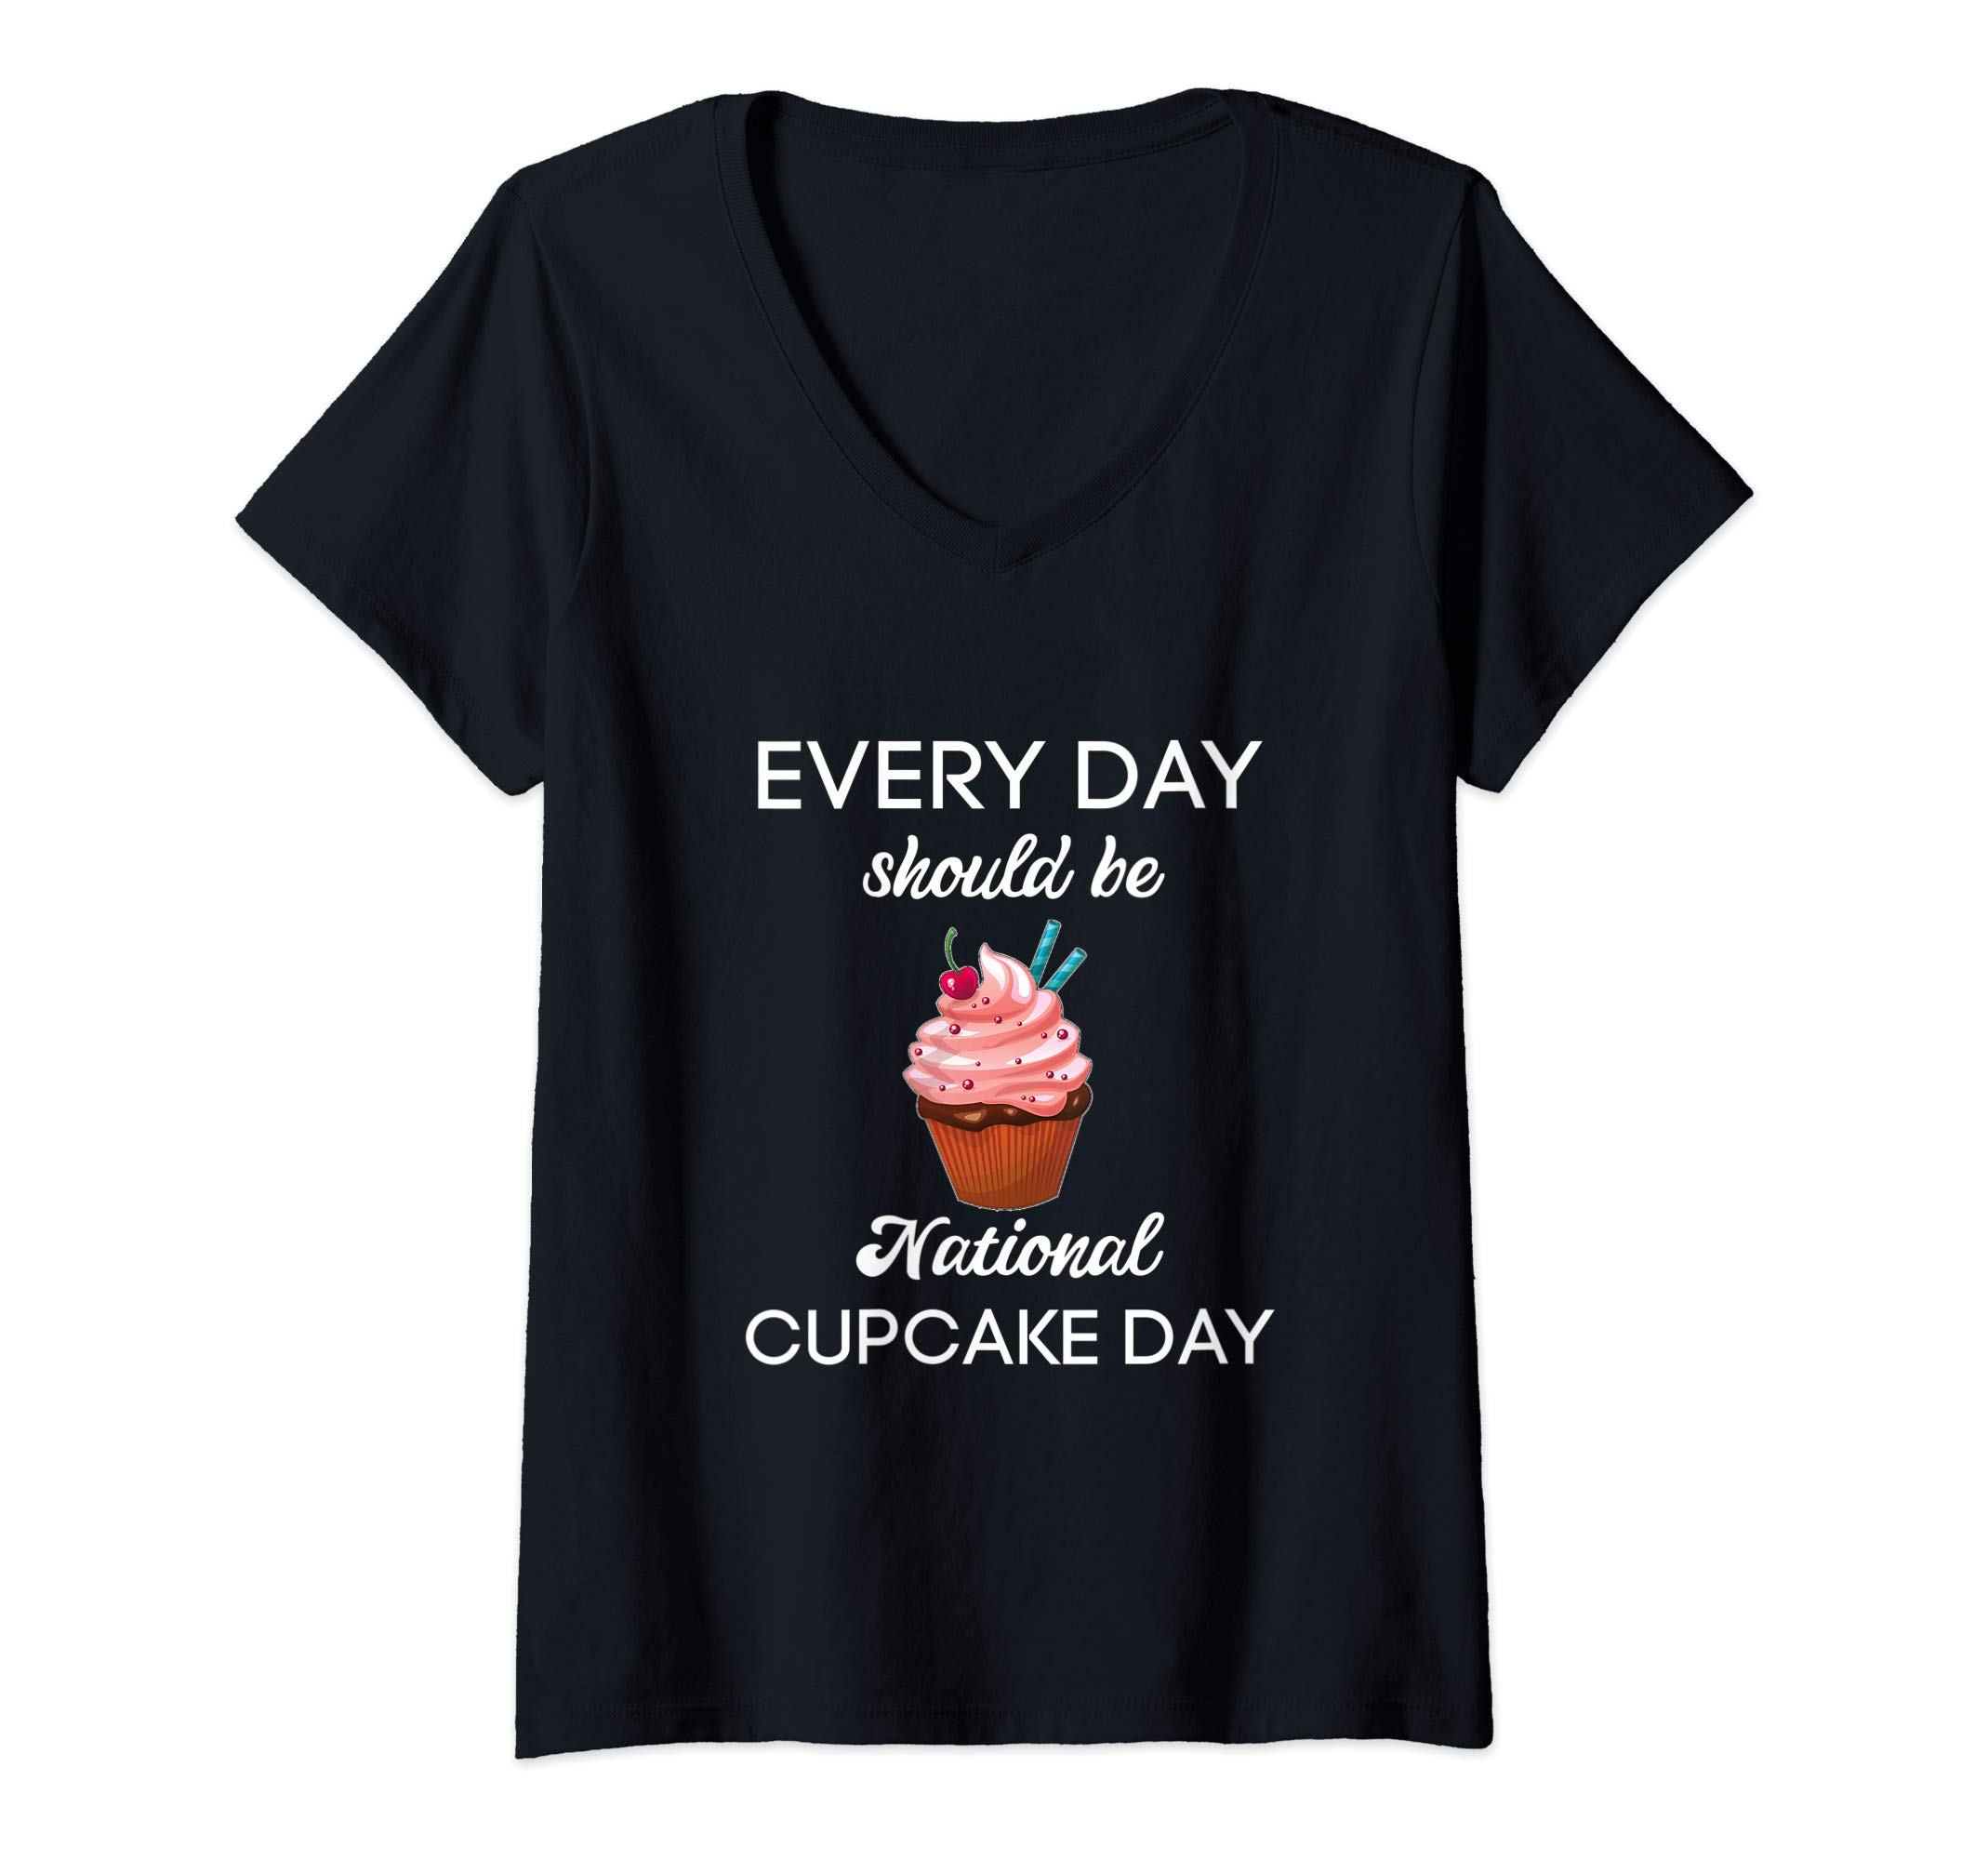 Womens Everyday Should Be National Cupcake Day Shirt, Cupcake Tee V-Neck T-Shirt by National Food Holiday Tees